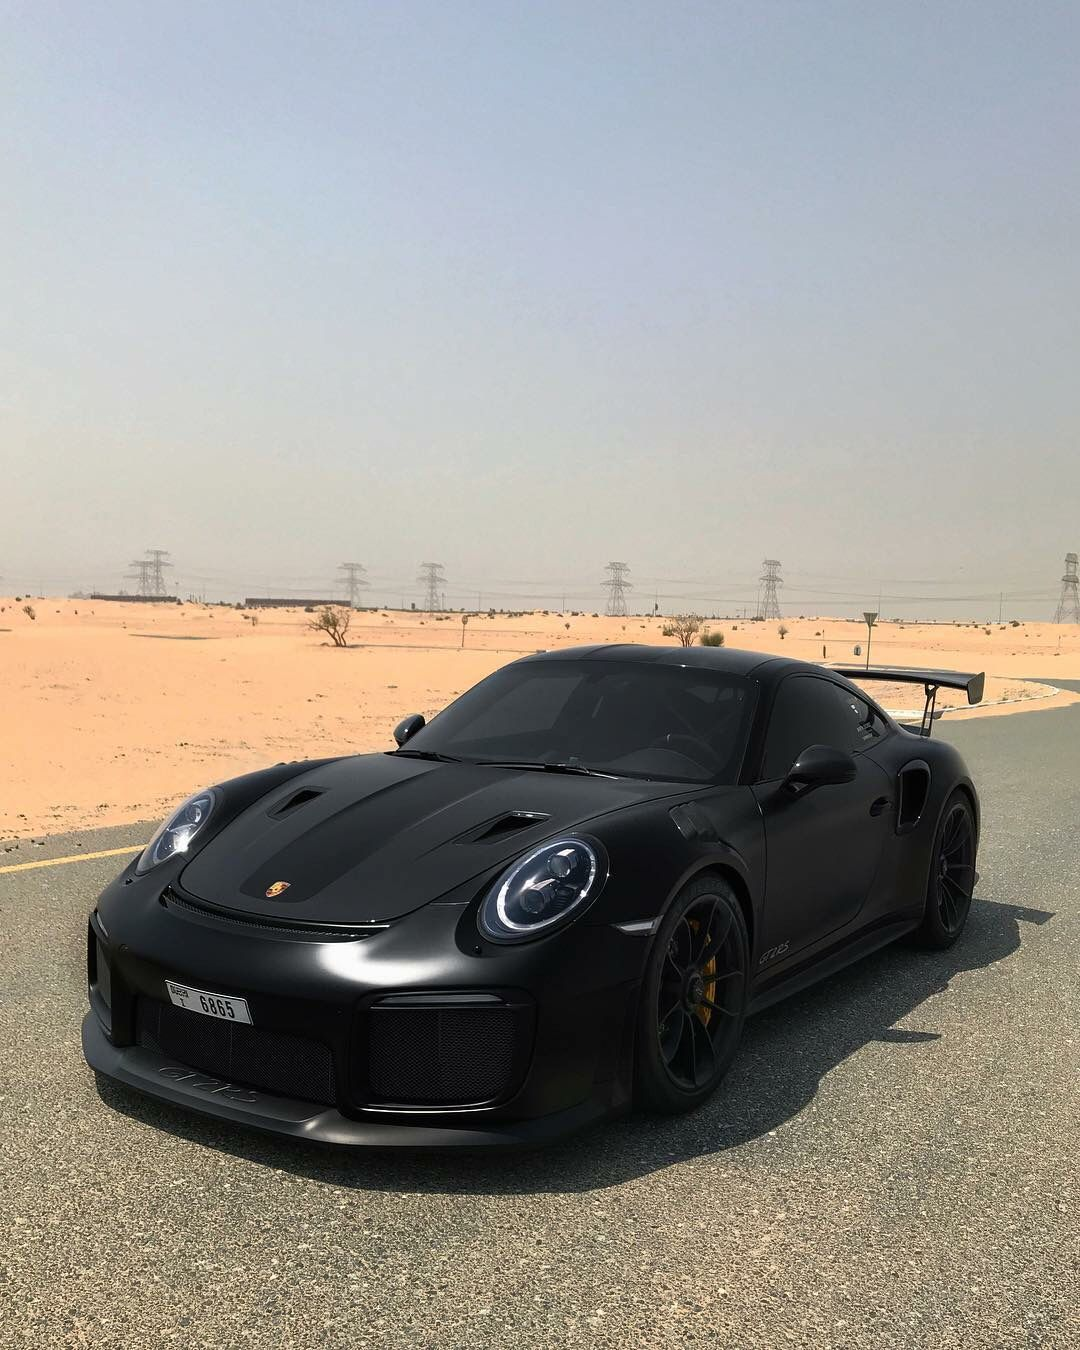 Luxury Cars Porsche Cars Black Porsche: Pin By Car Holic On Porsche